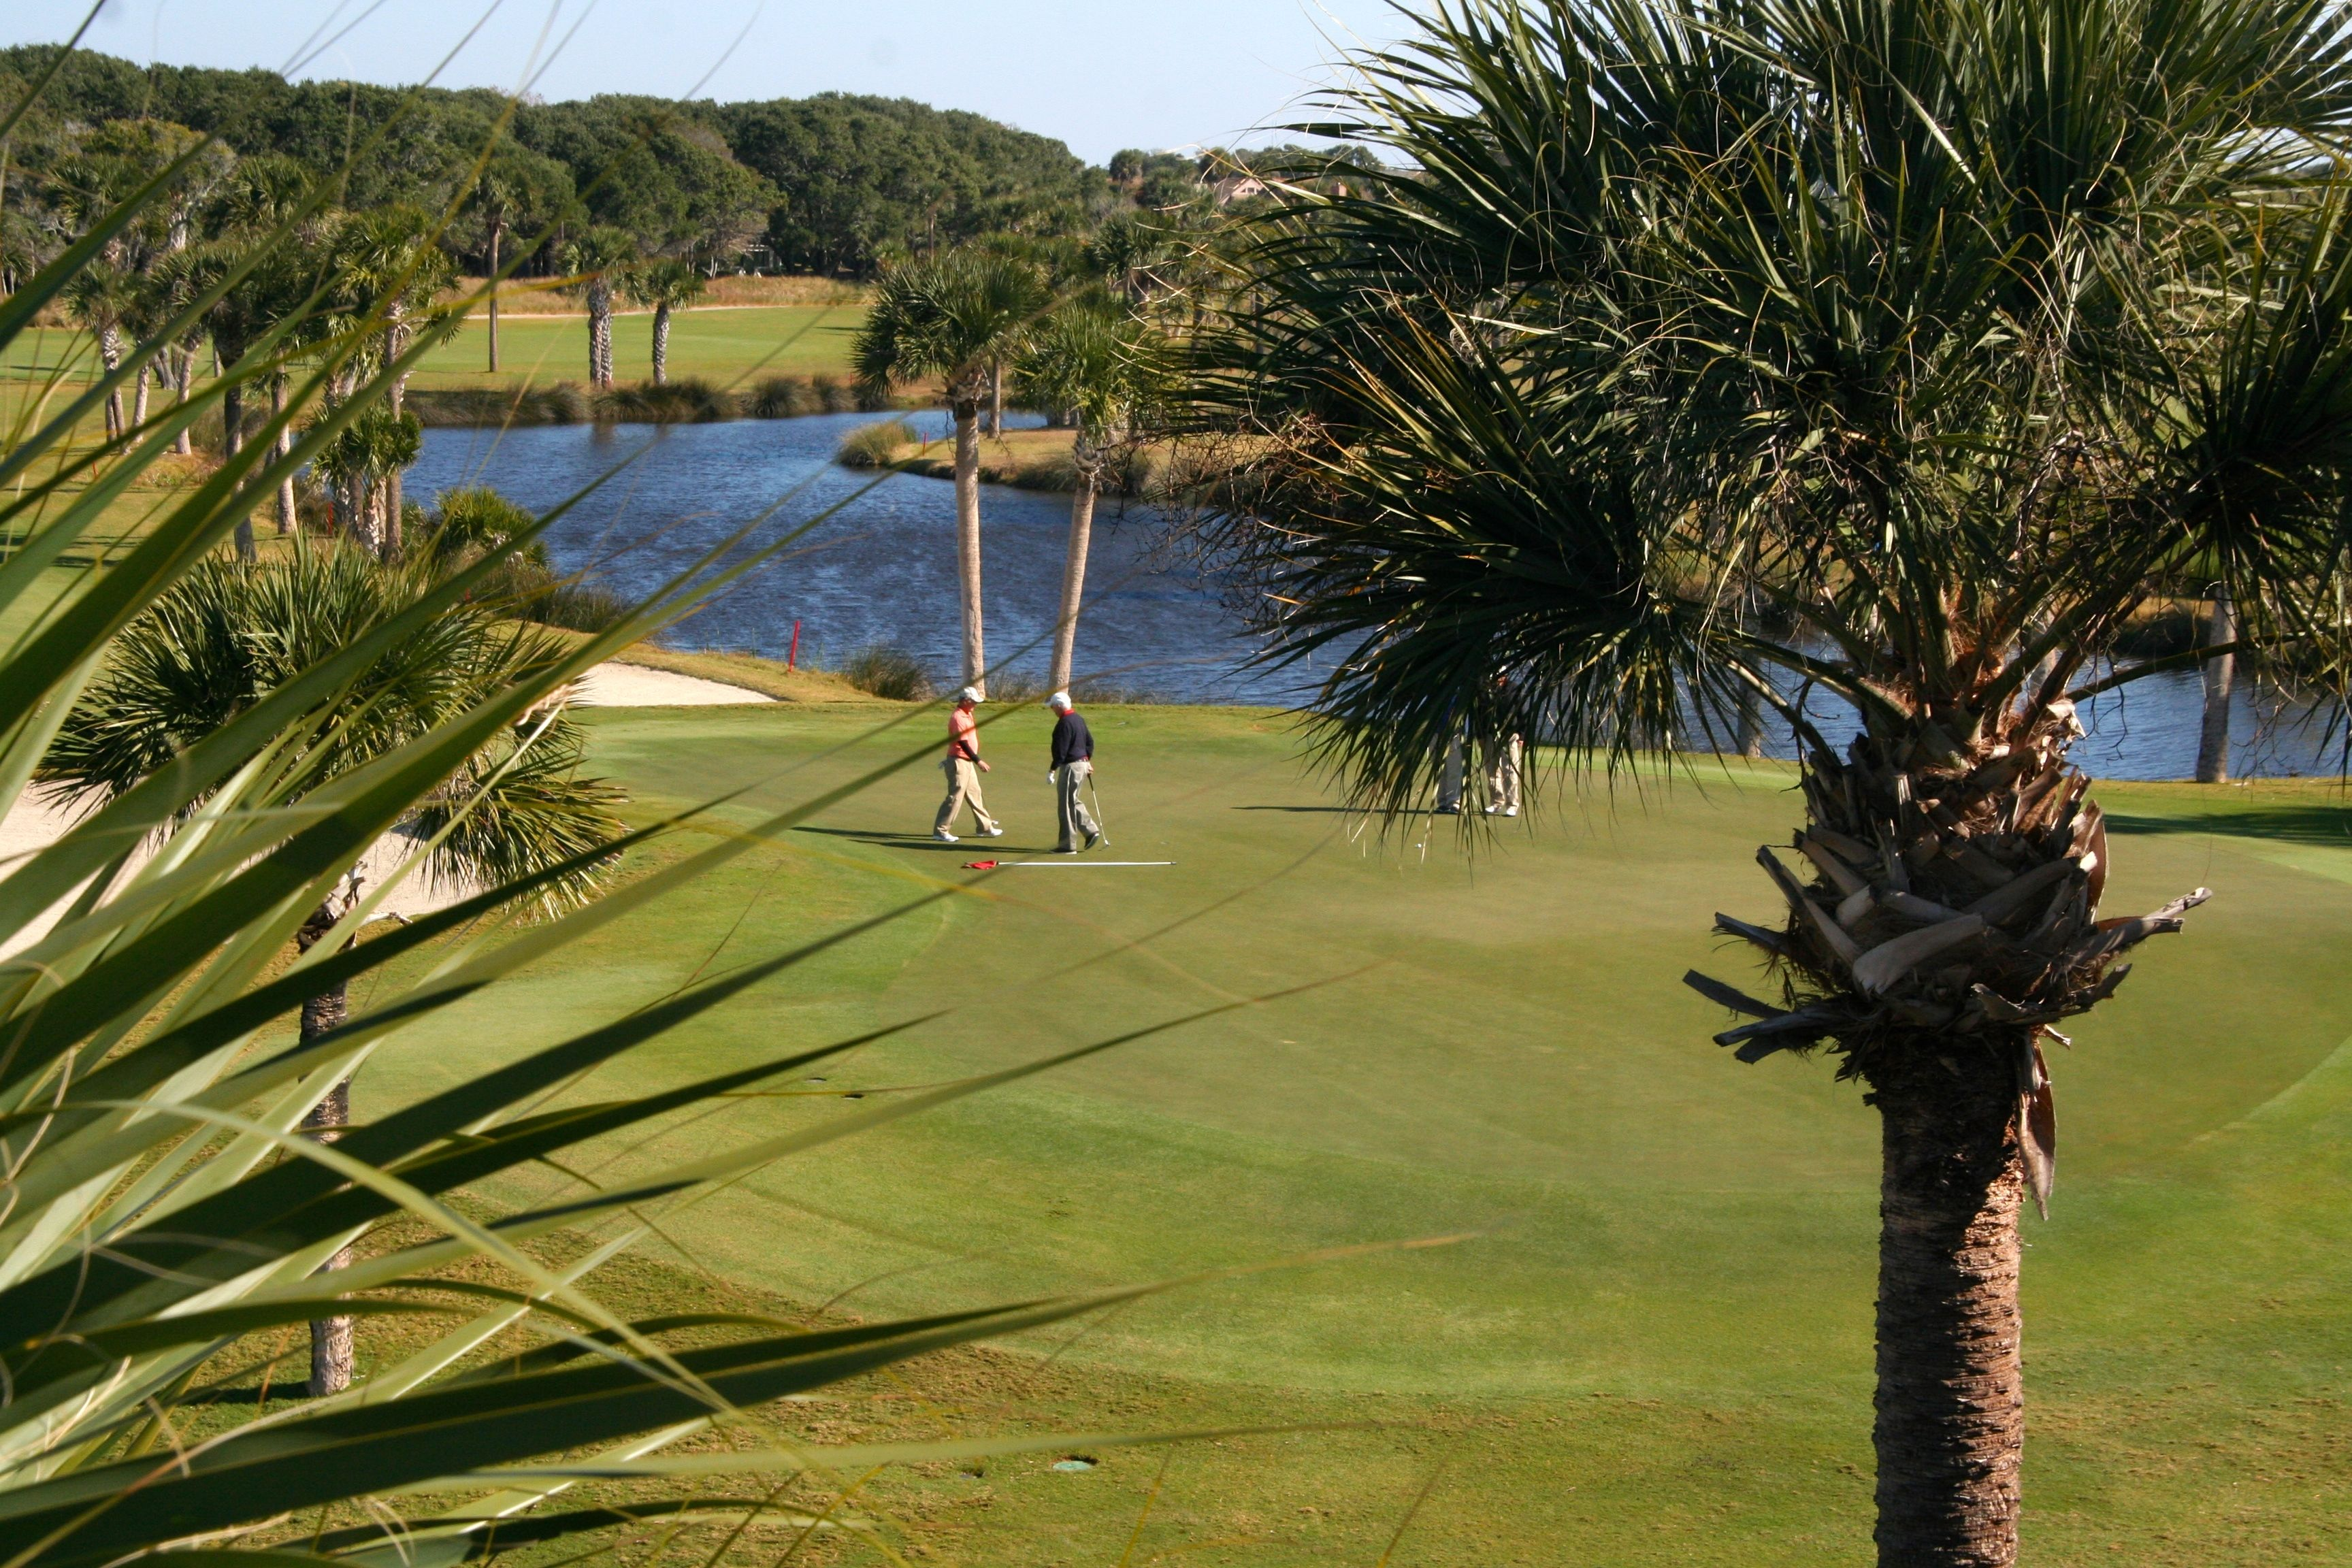 Watch the golfers navigate the 18th hole.